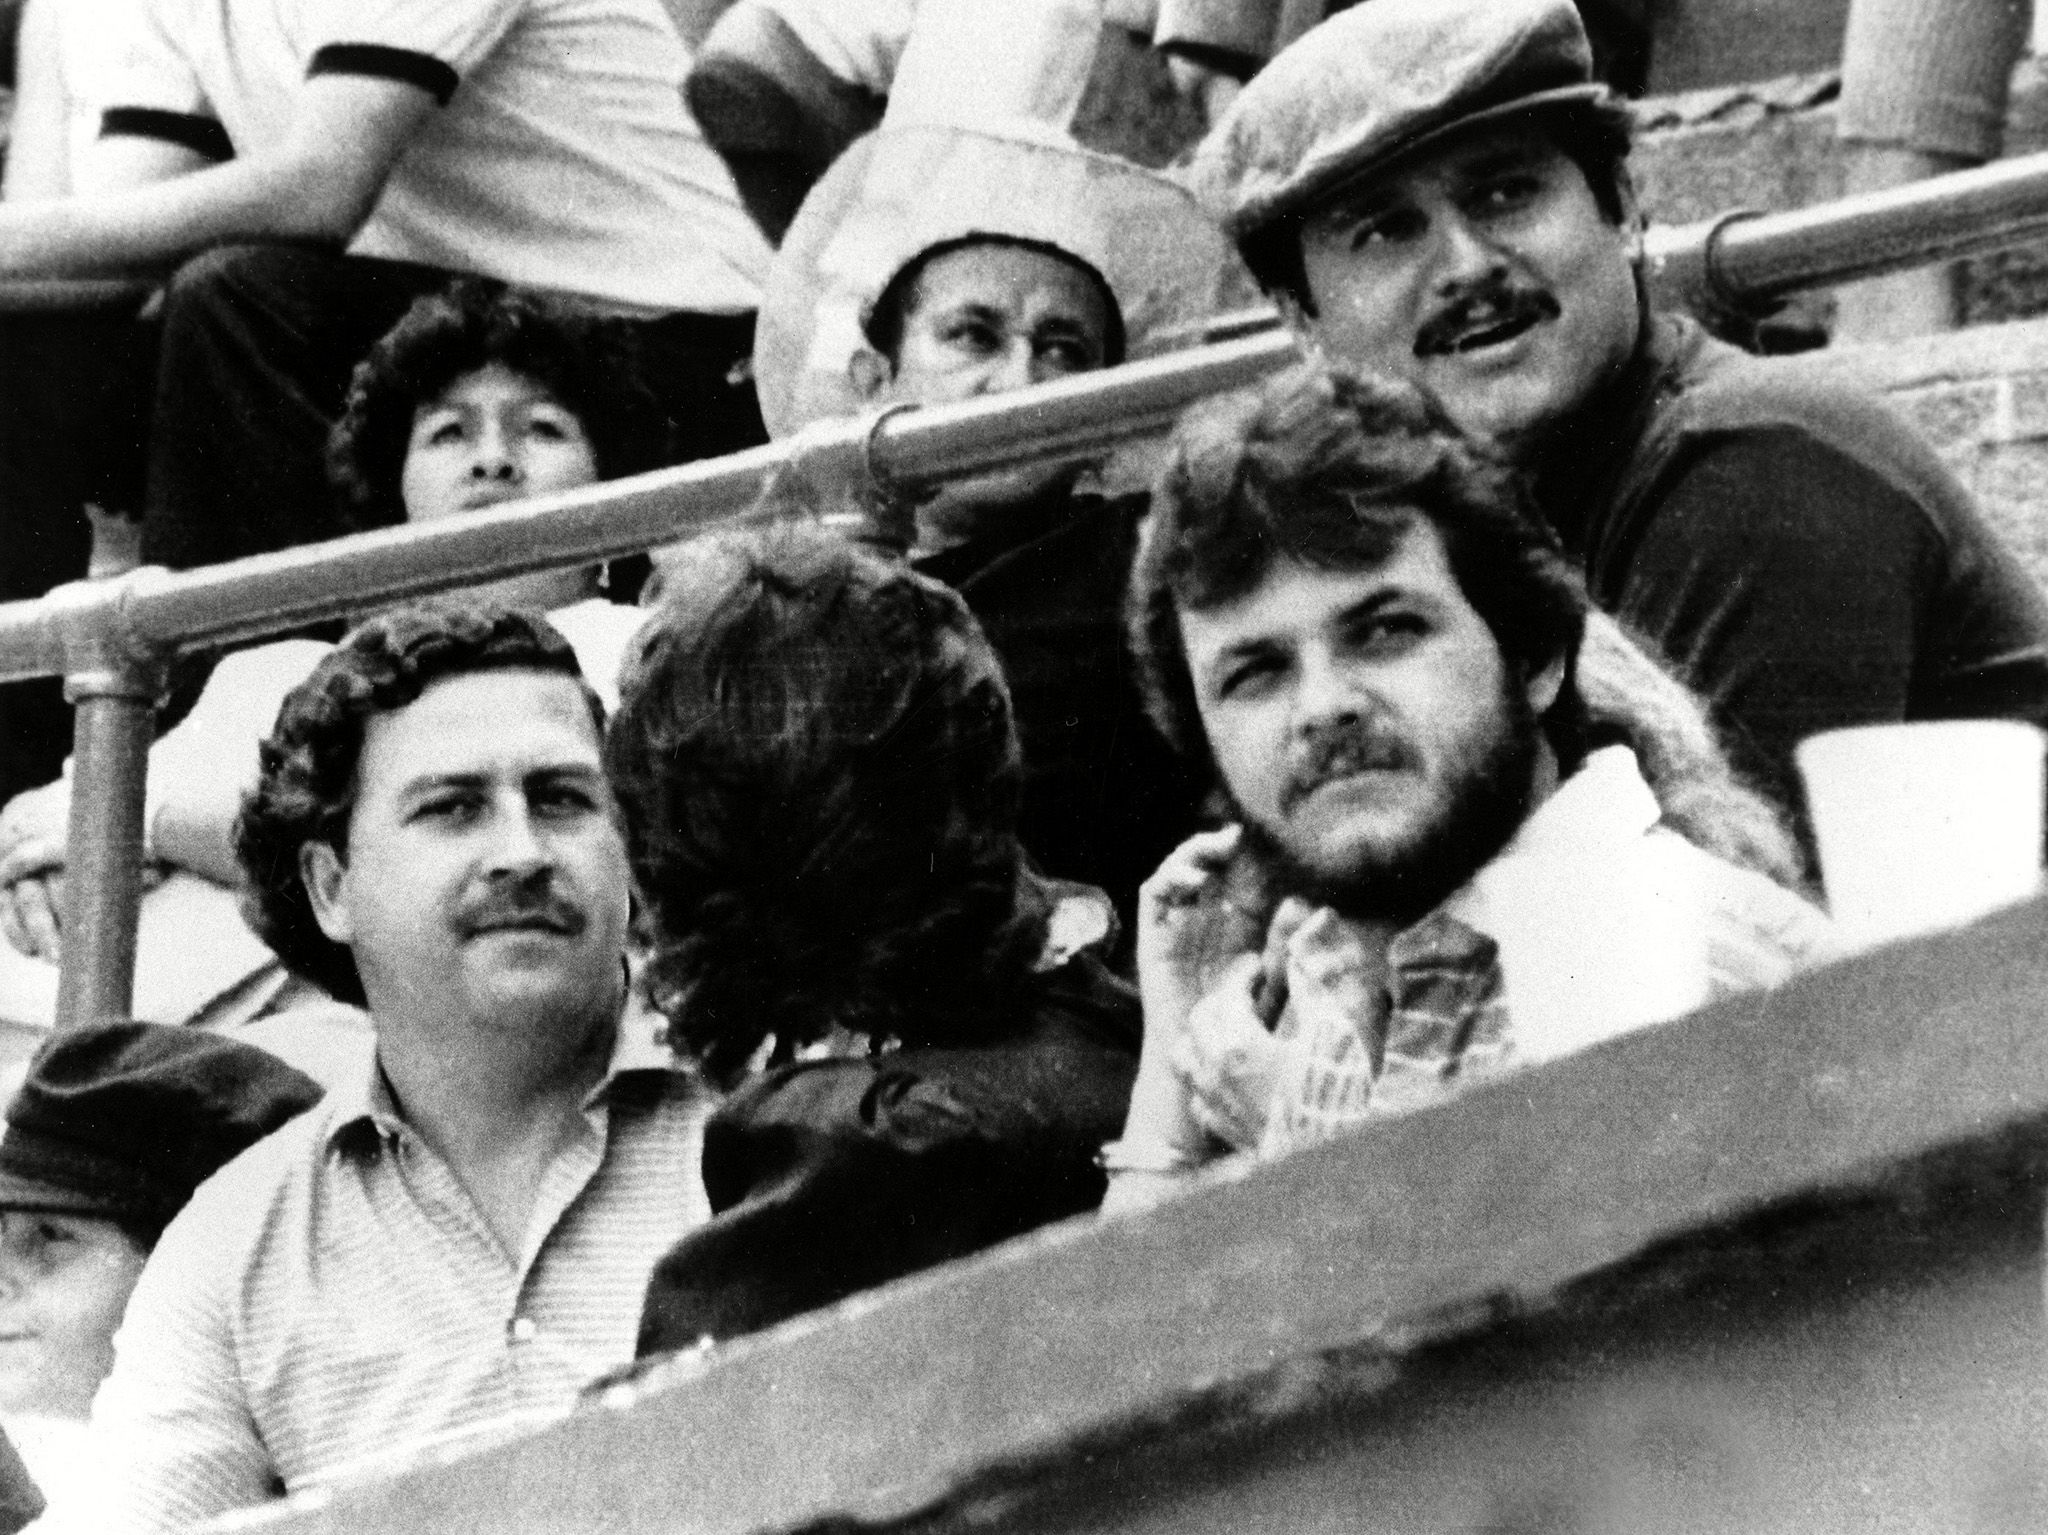 Pablo Escobar, left, and Jorga Luis Ochoa, right with hat, the two leaders of the Medellin... [Photo of the day - May 2019]